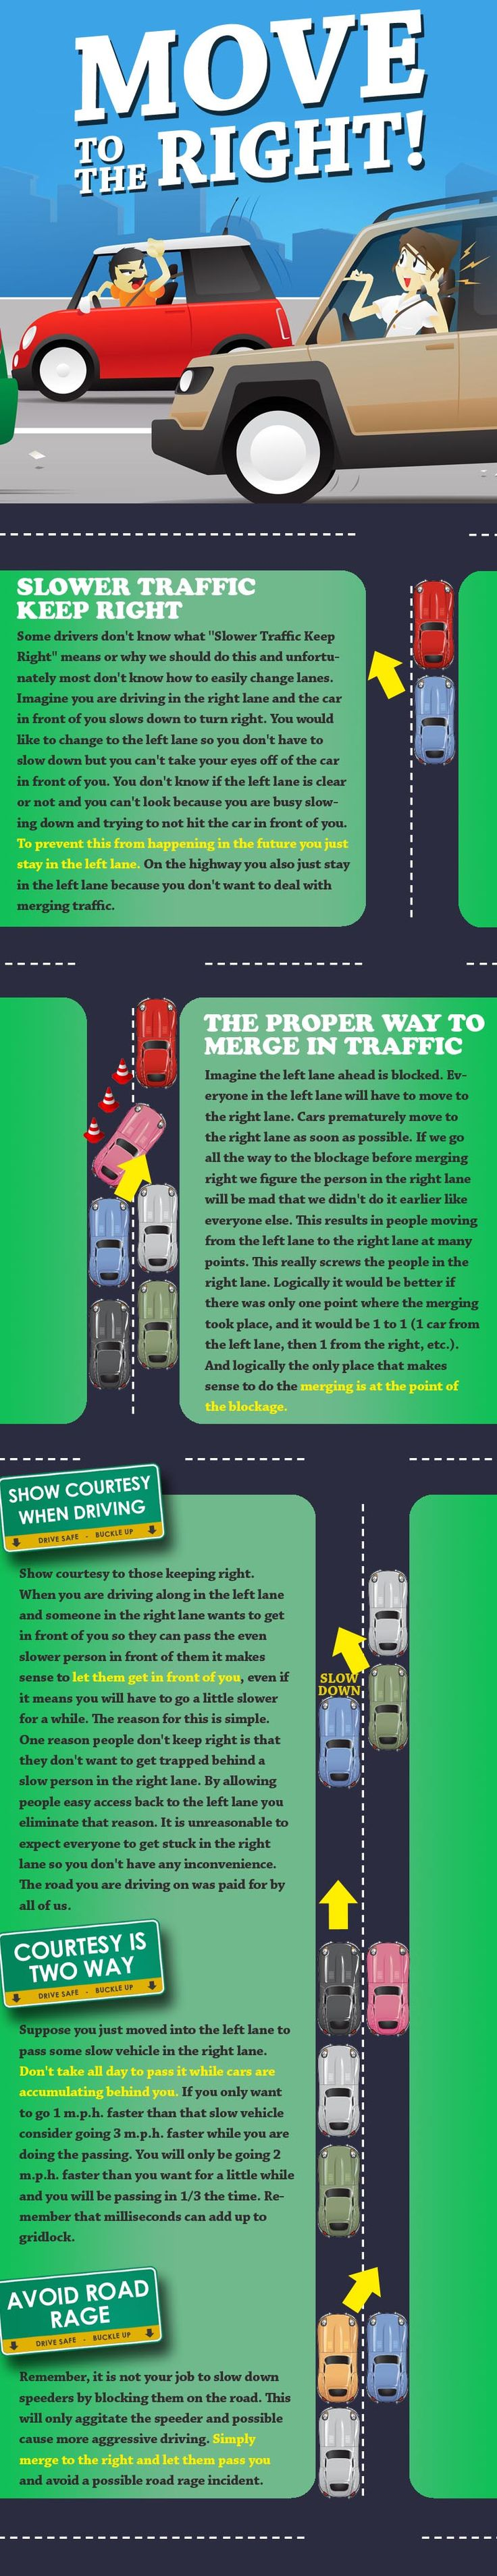 THIS IS SO TRUE!!! read it and do it!Elderlydriver Org, Drive Infographic, Cars Accidents, So True, Refreshing Courses, Left Lane, Mn Driver, Aggressive Driver